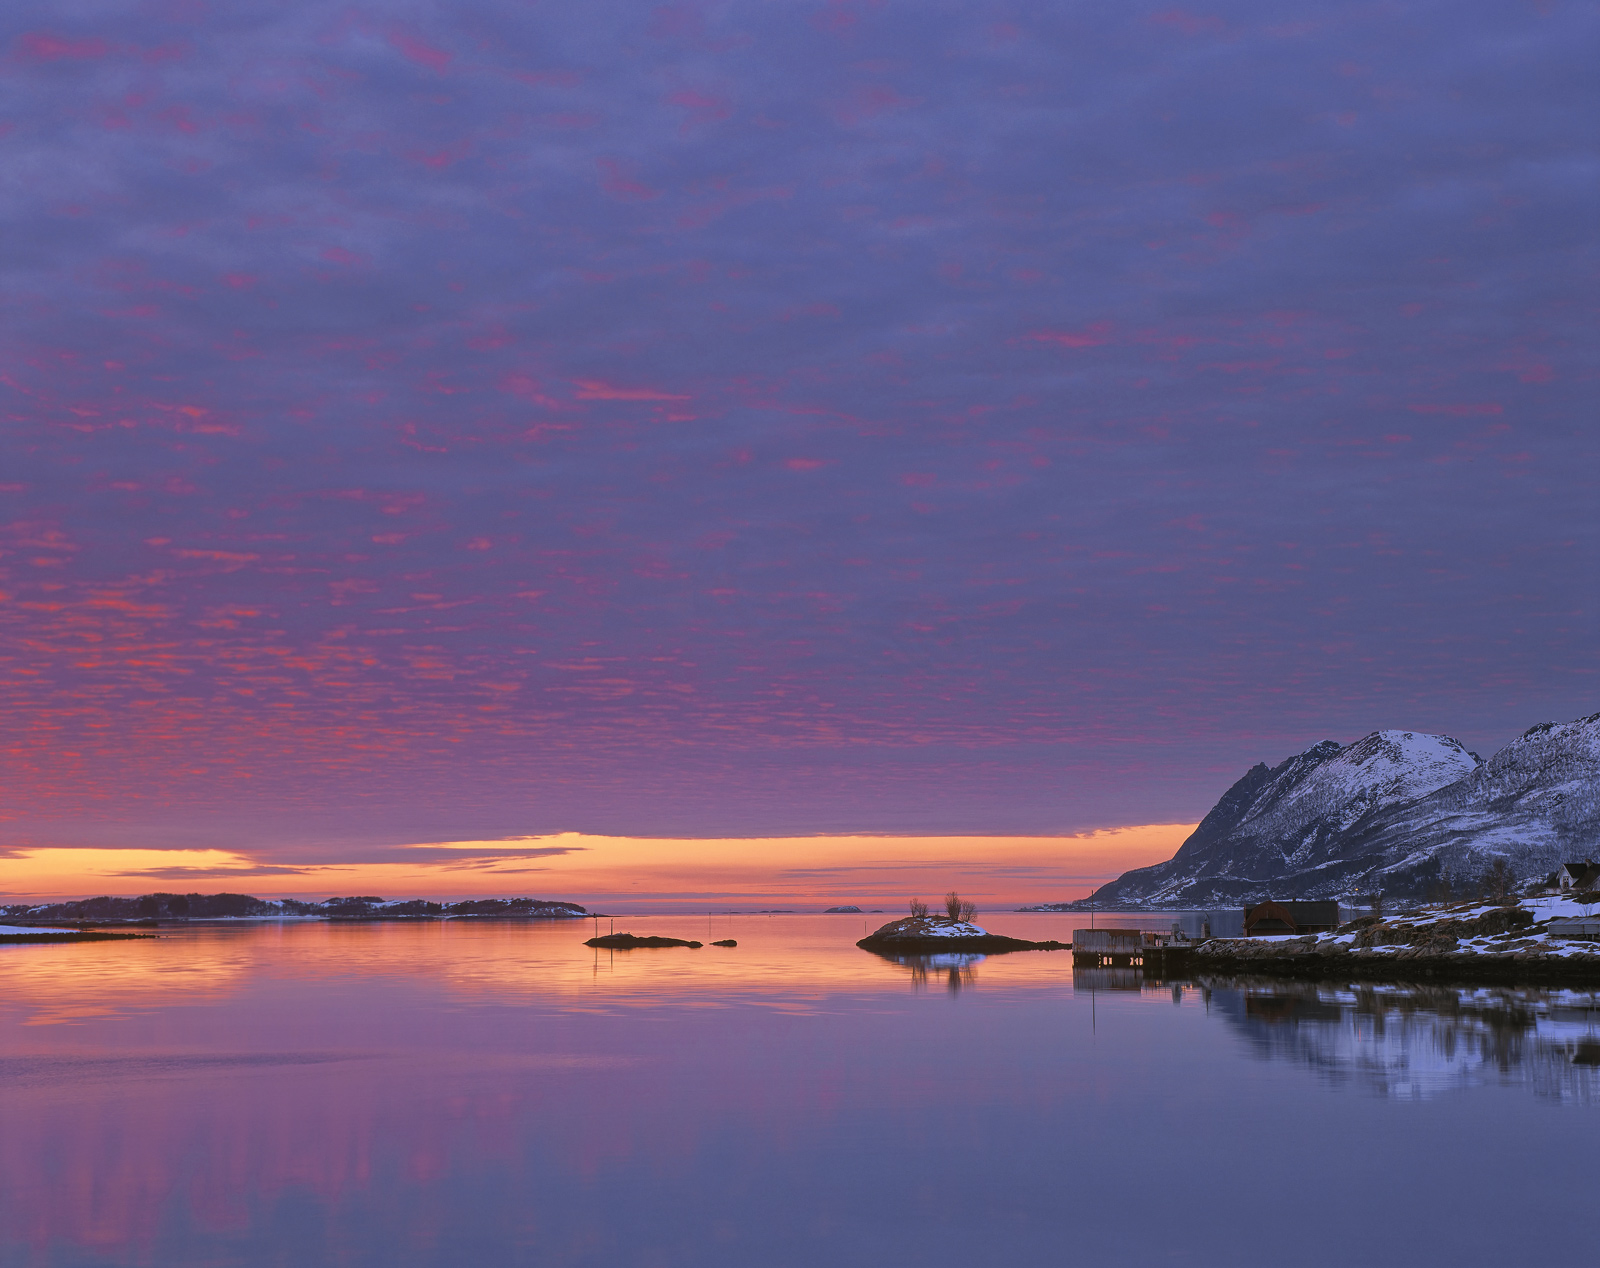 Senja Gloaming, Straumsnes, Senja, Norway, sun, reflection, stunning, flecked, crimson, unearthly, arctic, mountains, su, photo